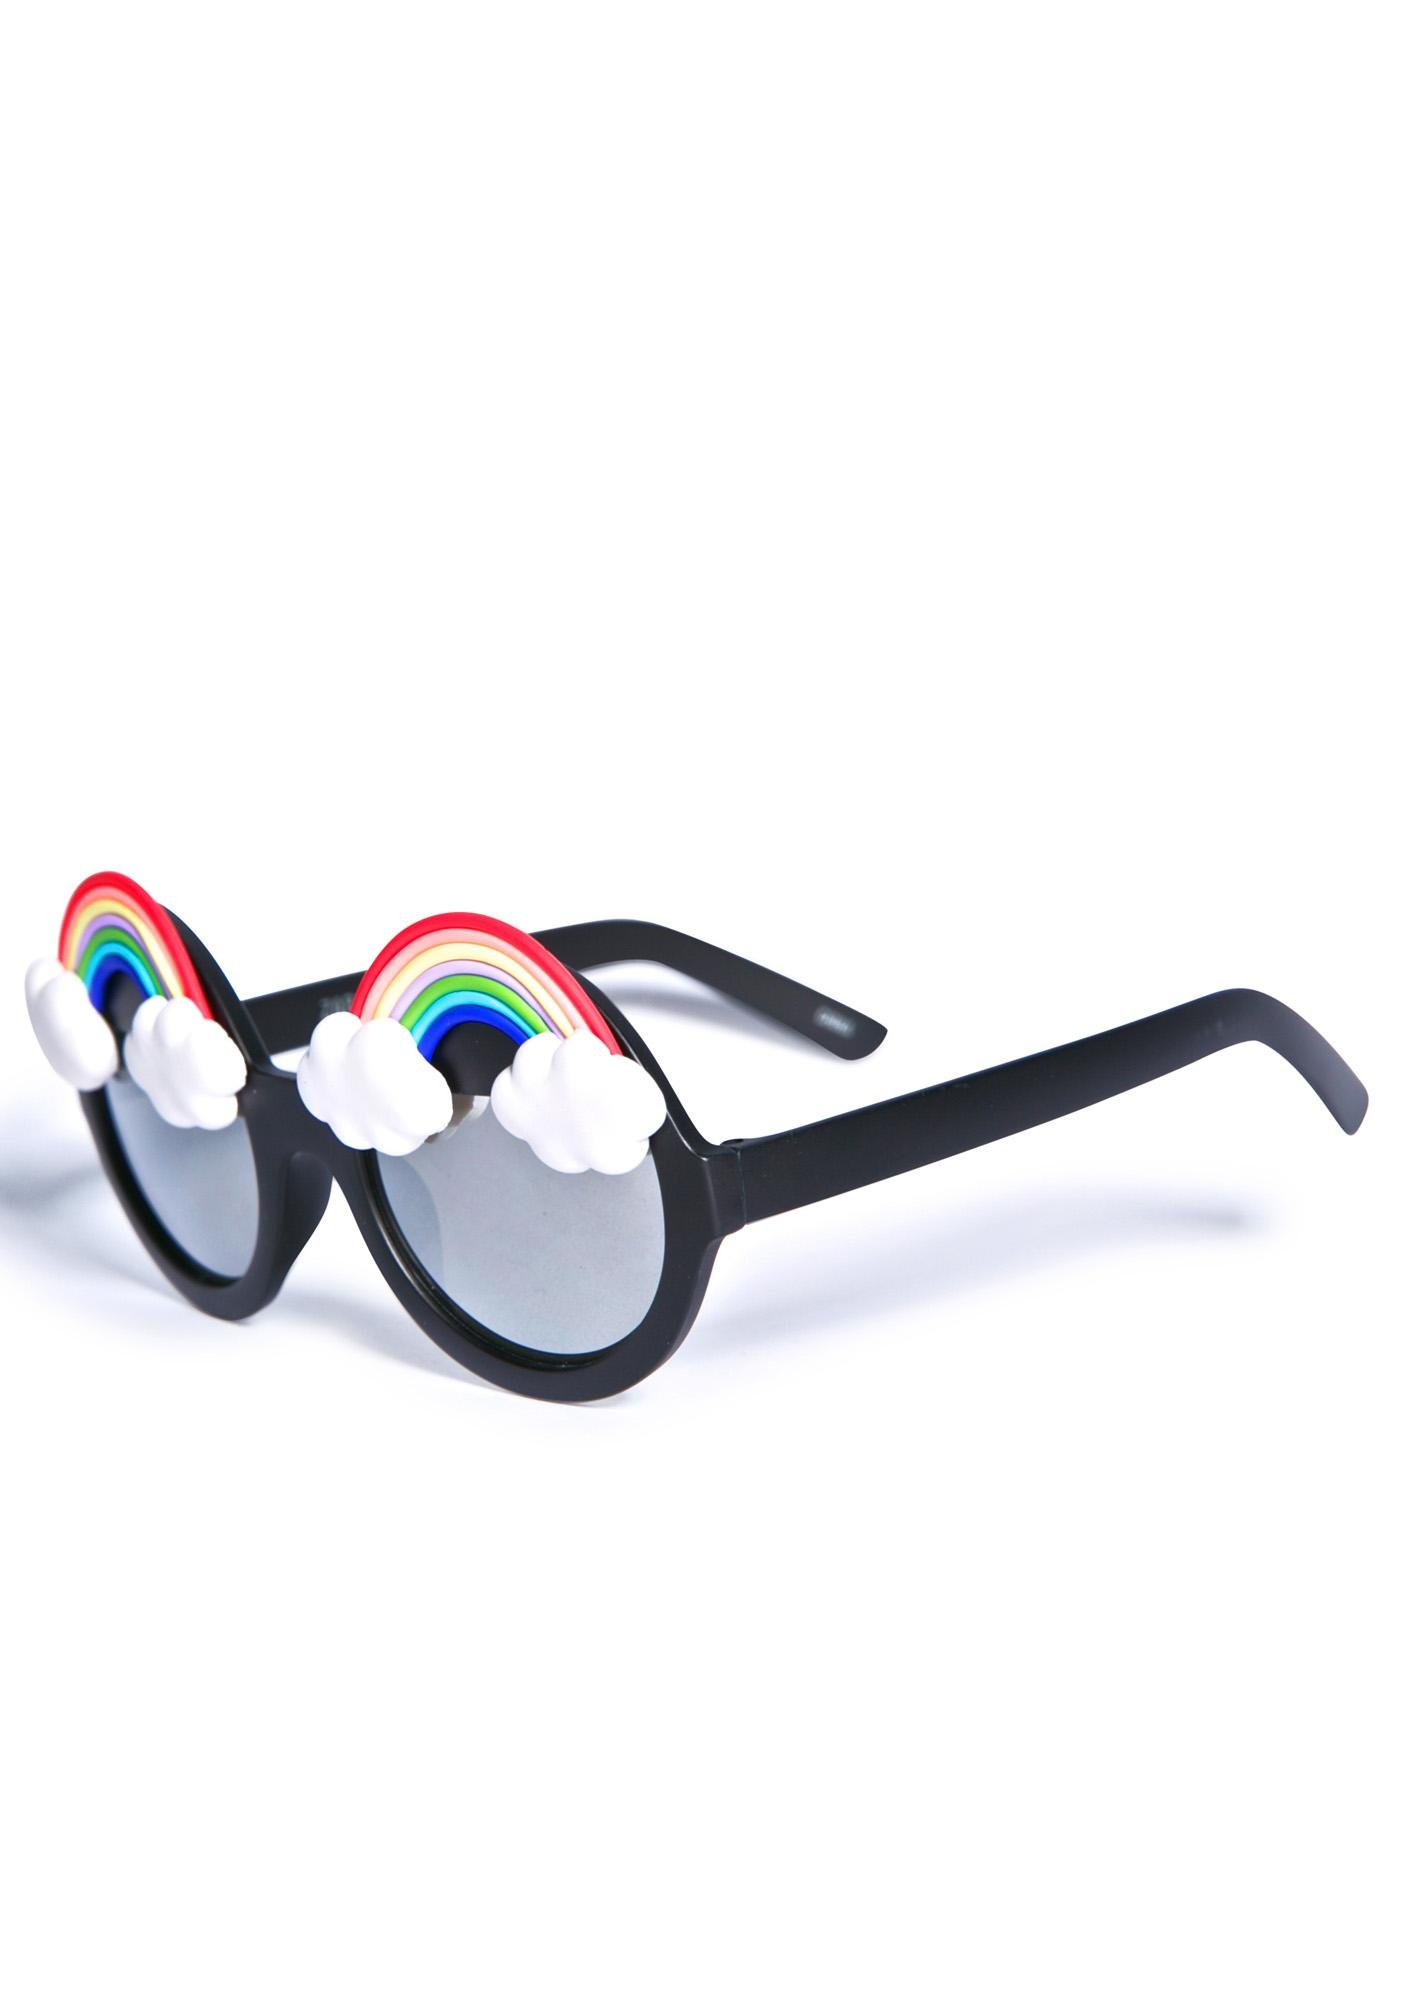 Gasoline Glamour Fantasia Rainbow Wilde Sunglasses